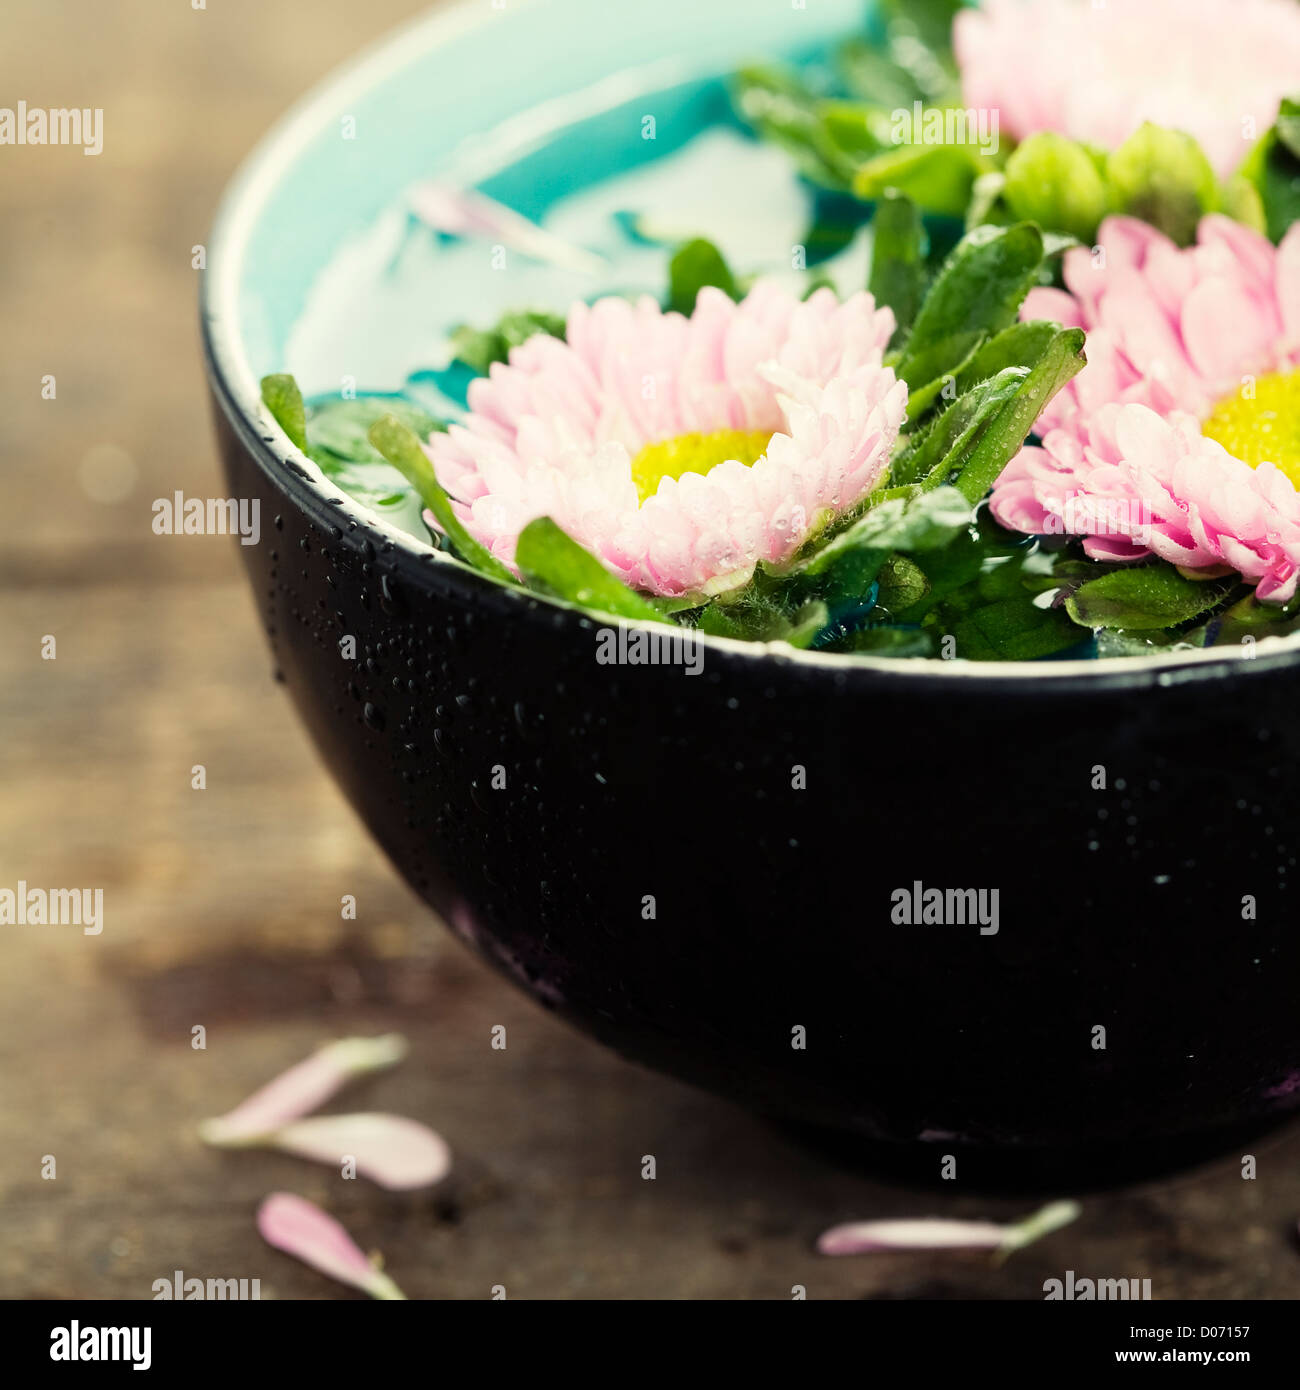 bowl of water and flowers in grunge style - Stock Image